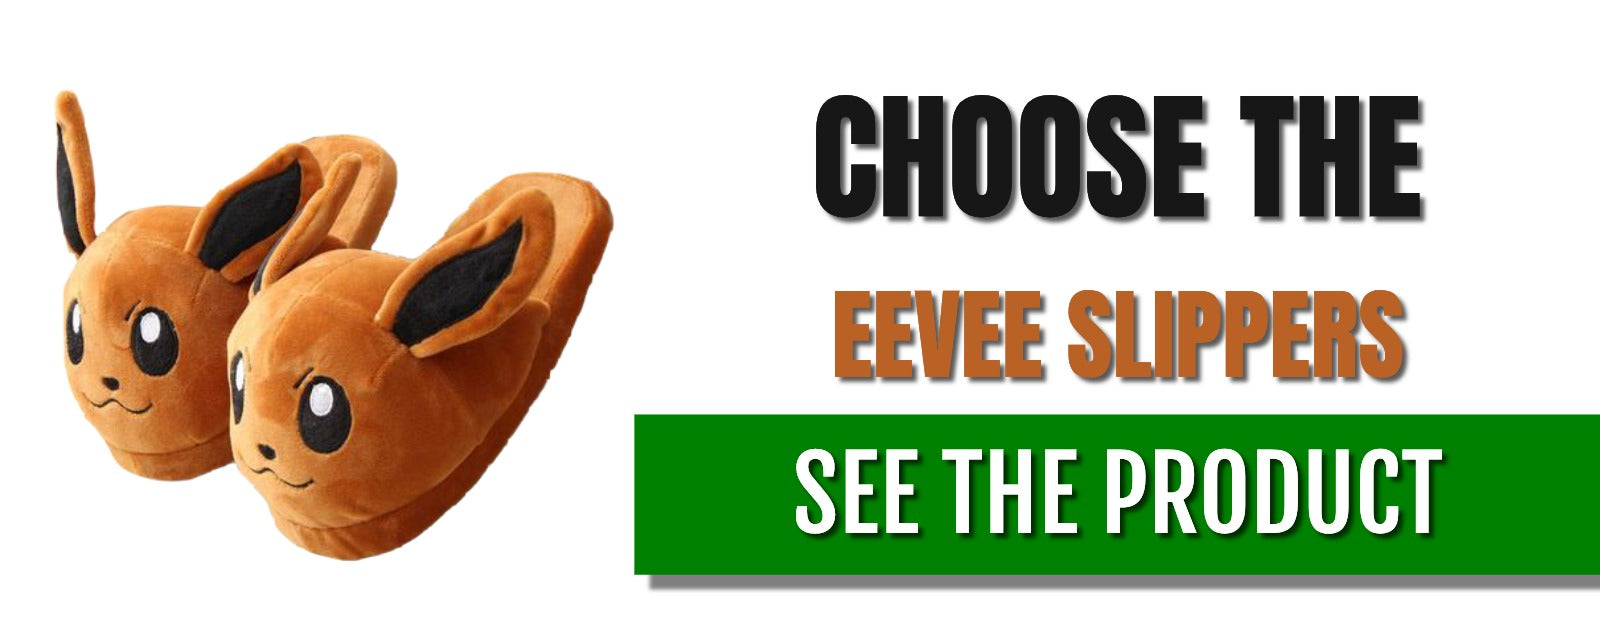 Eevee slippers adult product banner